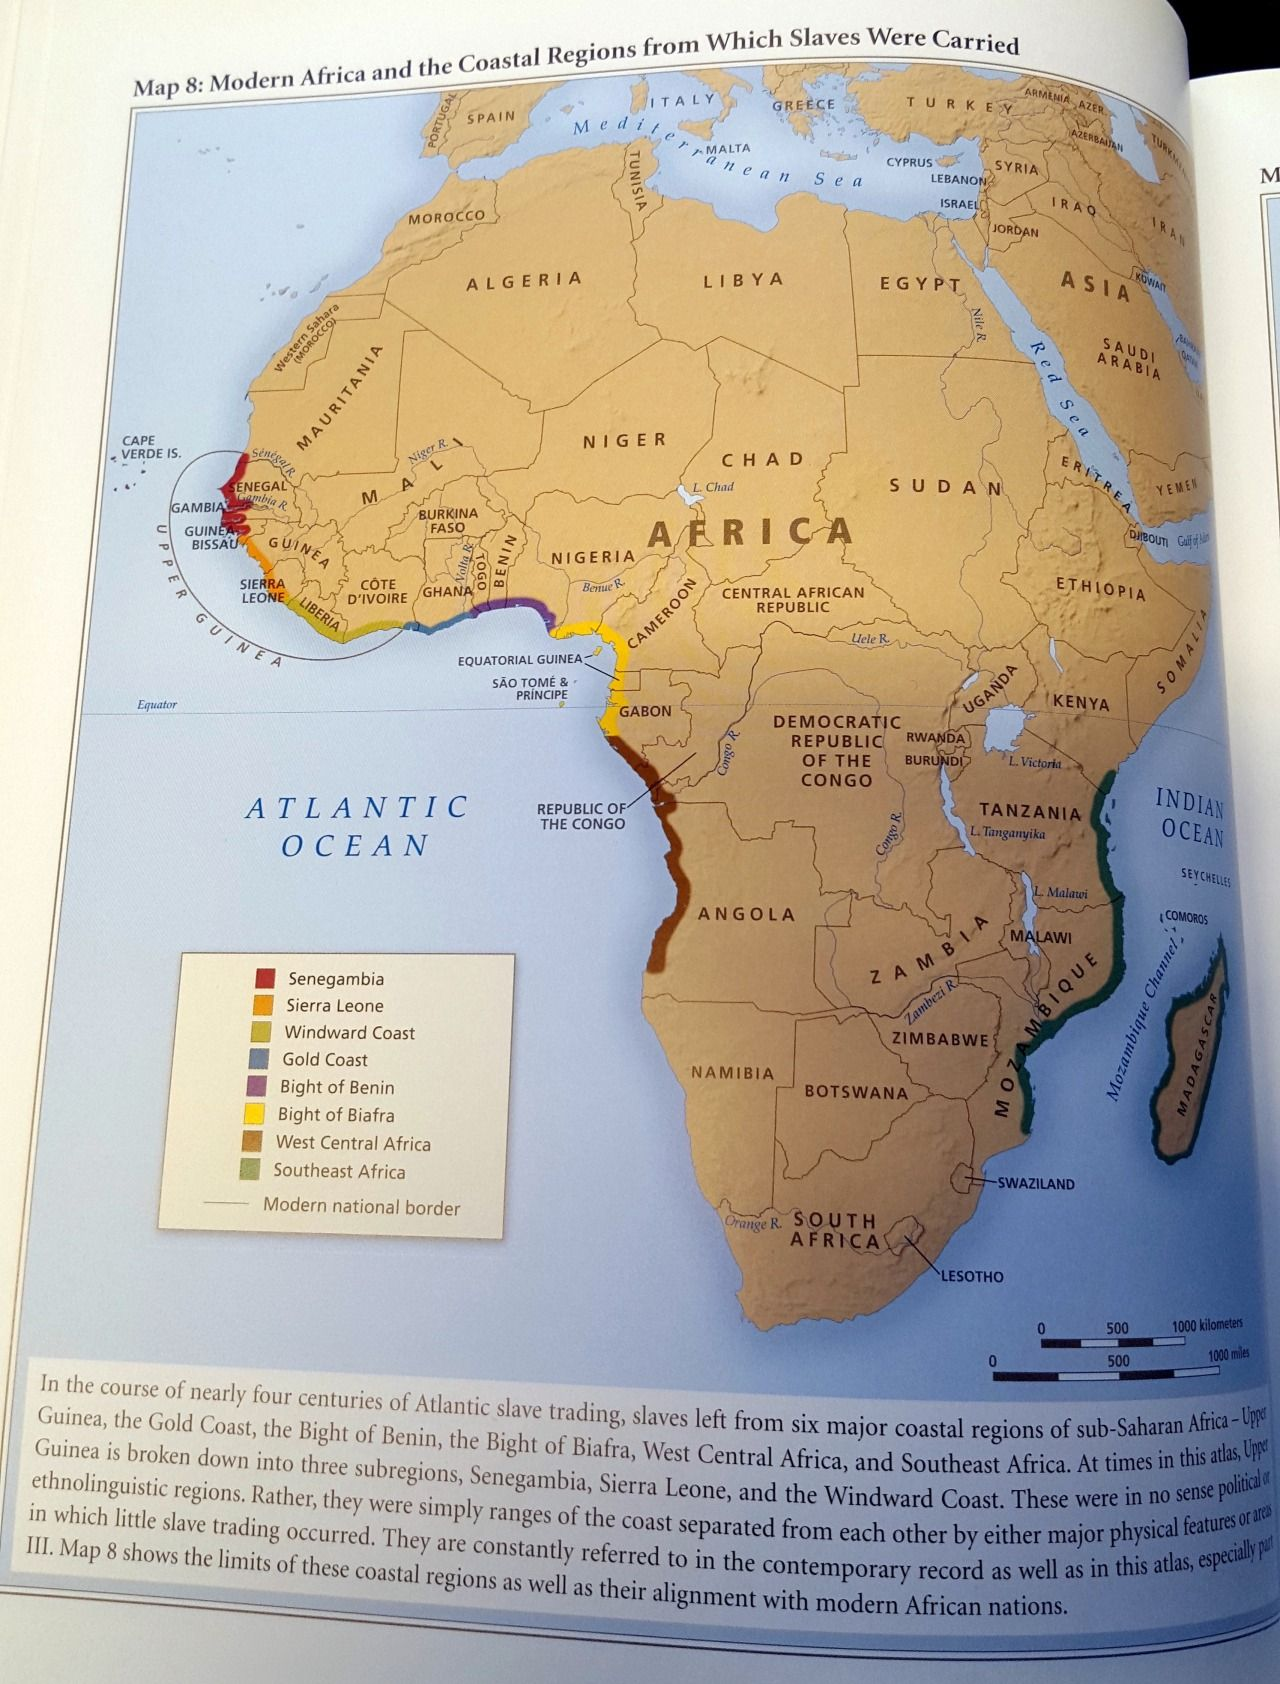 Modern Africa And The Coastal Regions From Which Slaves Were Carried